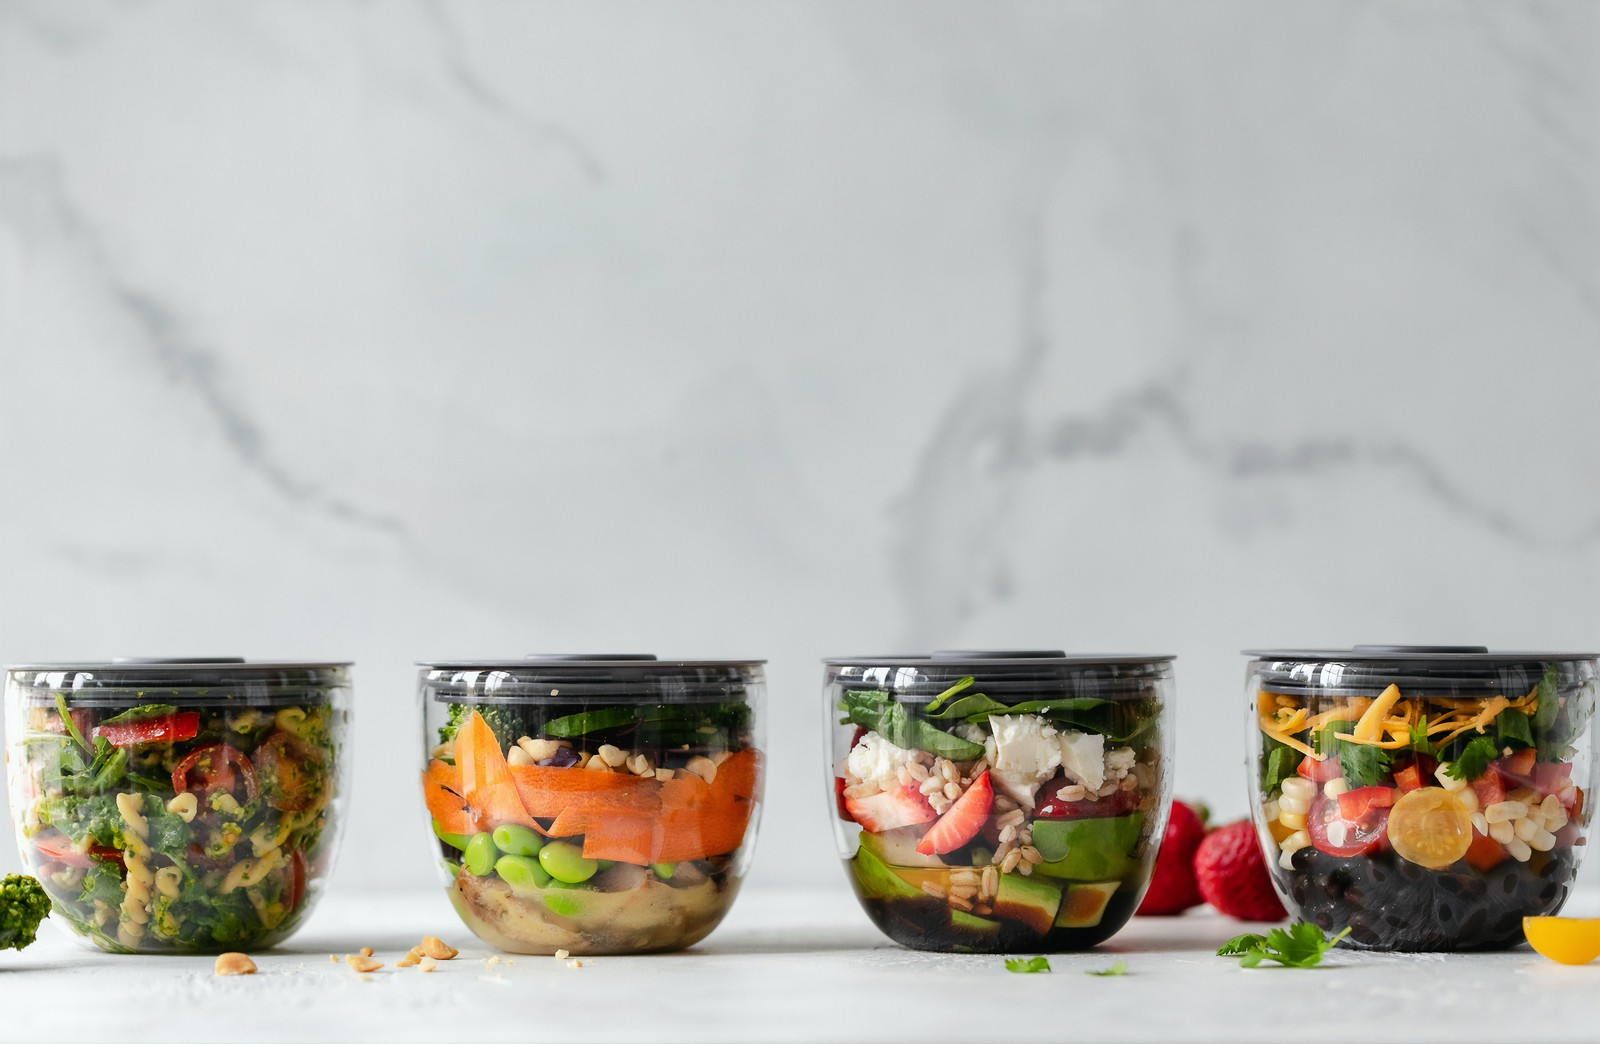 Tubs of healthy food meals